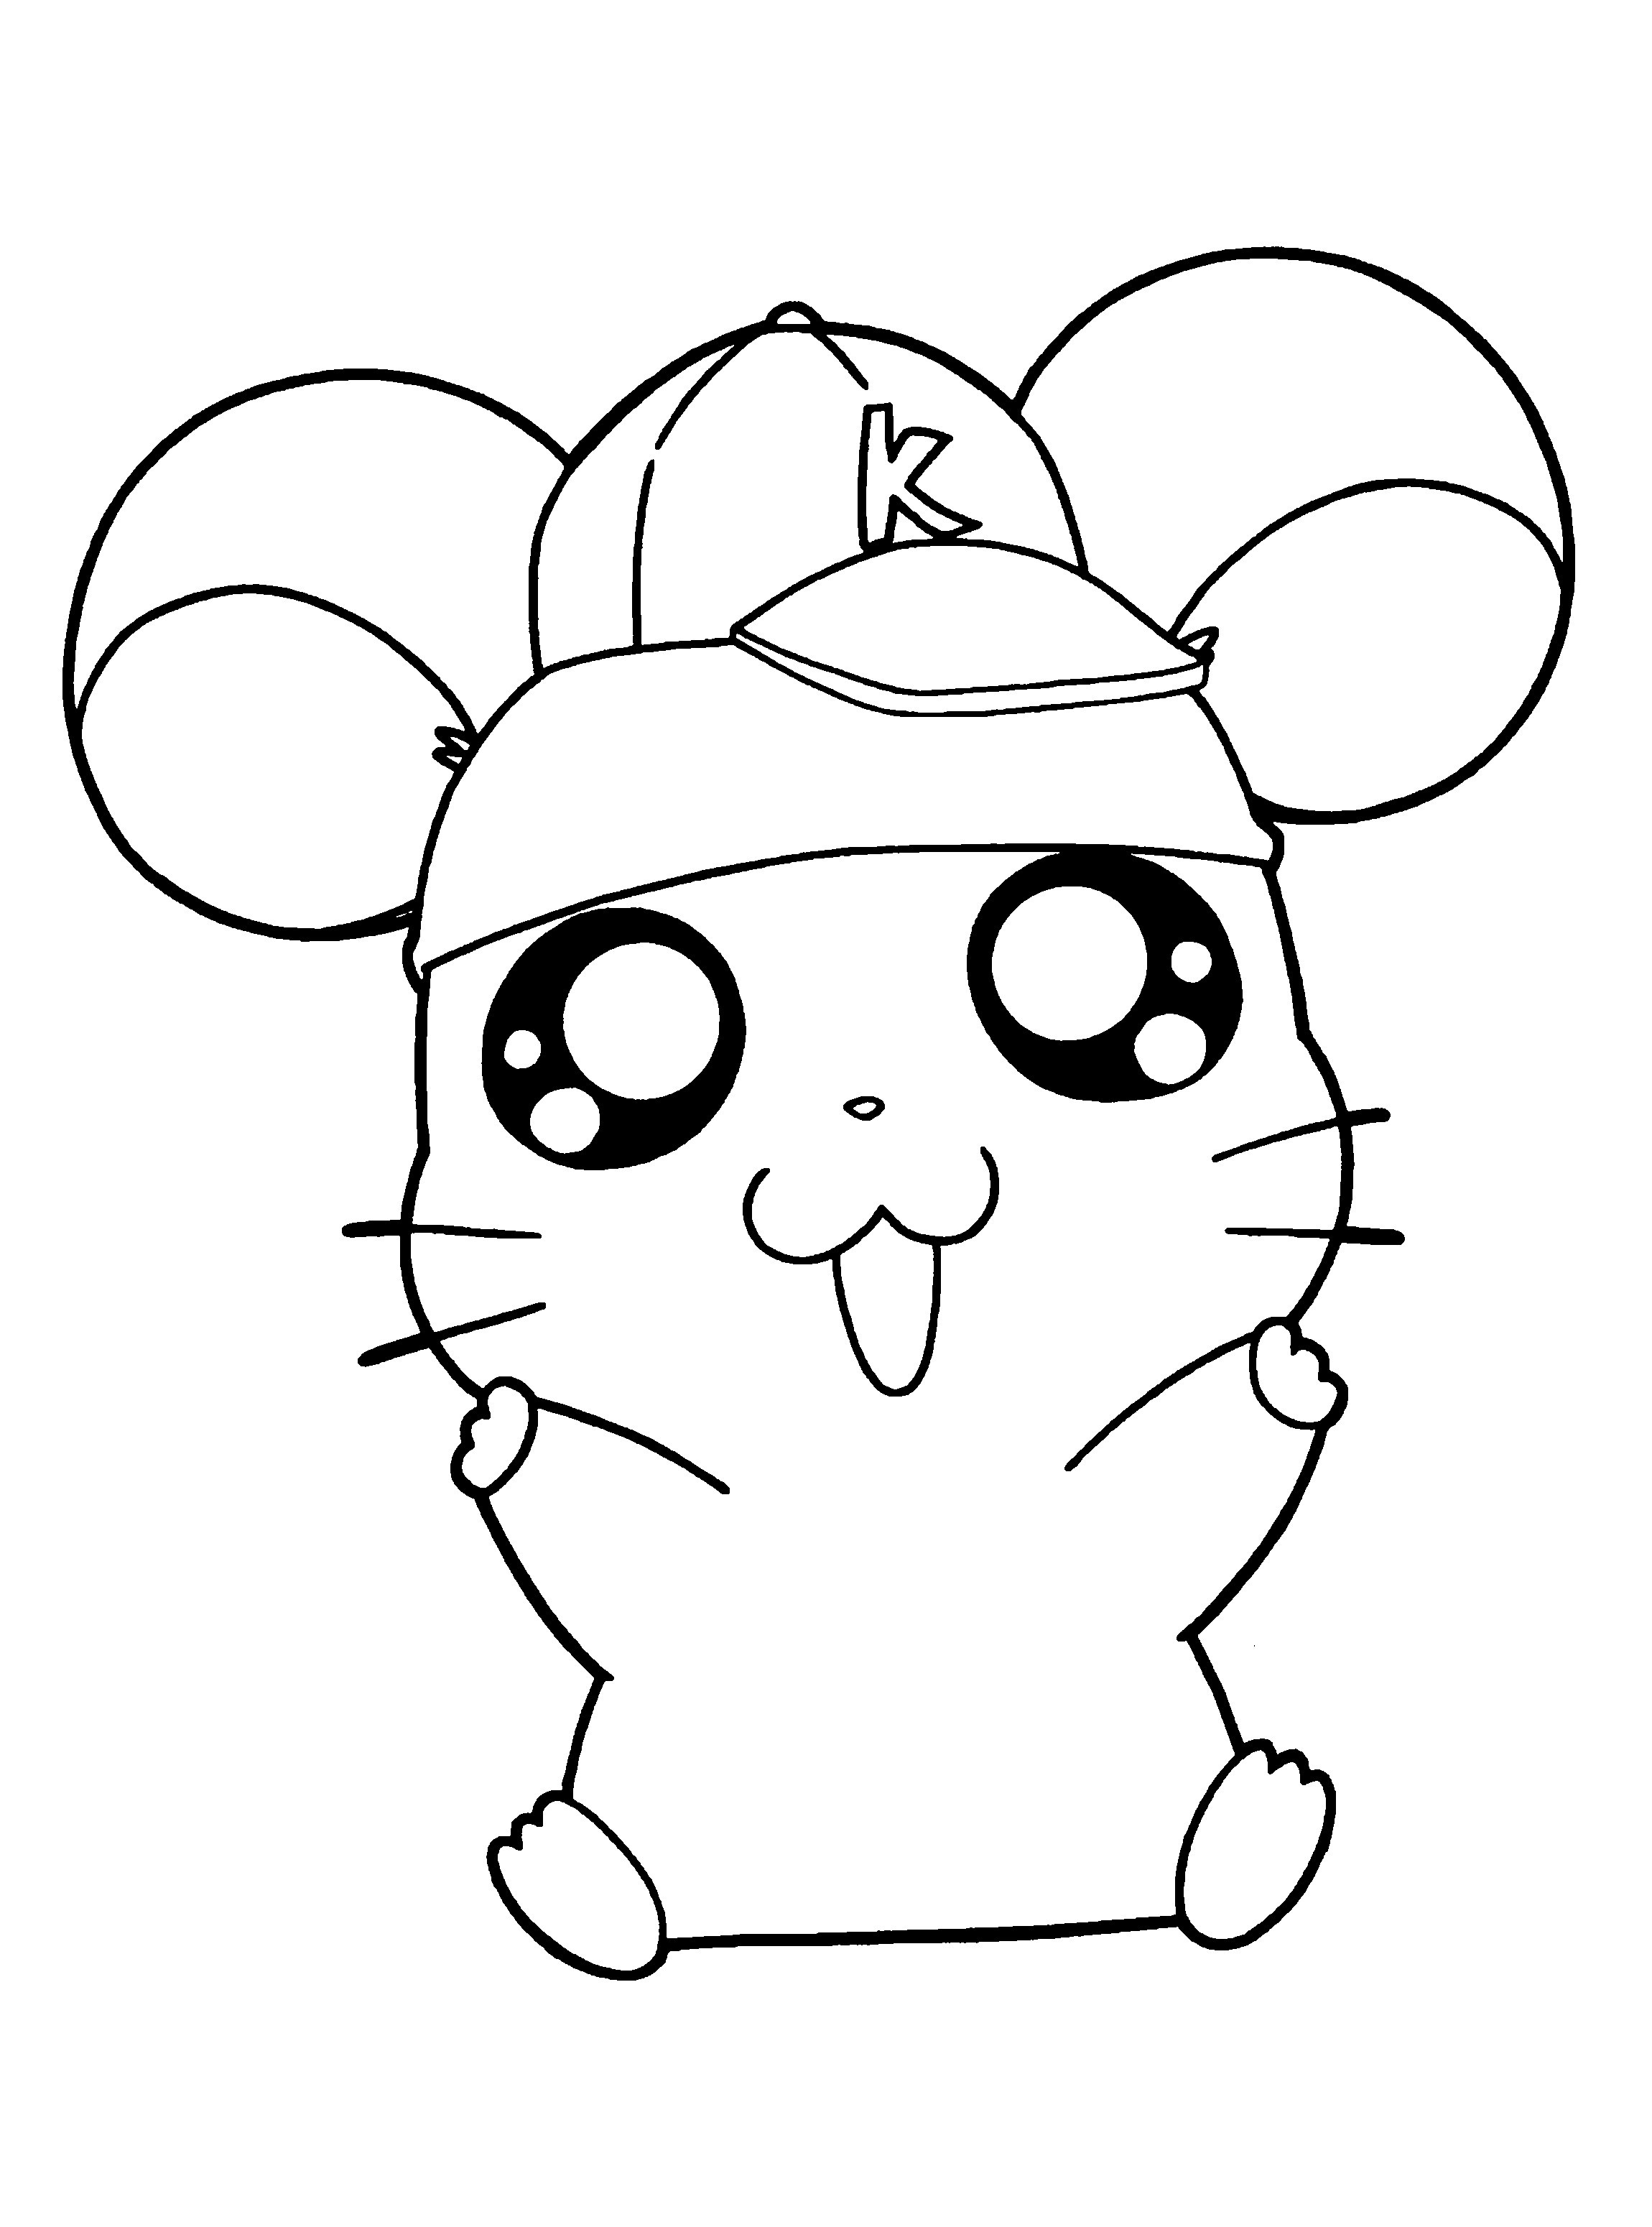 hamster coloring pages hamster coloring pages kidsuki pages coloring hamster